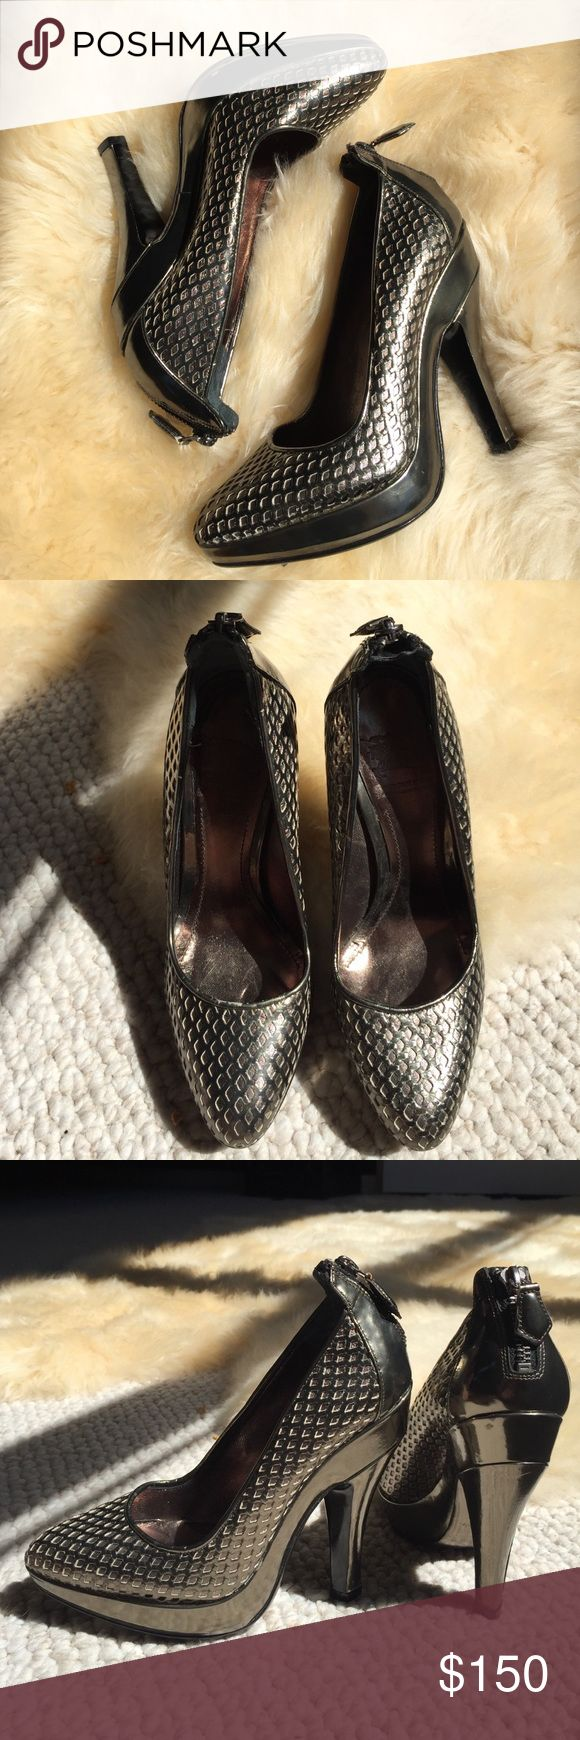 BURBERRY Metallic Pumps Size 35 / 5 NWT🎉 *Authentic* Burberry Prorsum pumps 💖Purchased from a pop-up Burberry Outlet and never worn. They are a Size 35 and run a bit small. Could fit a Size 4, 4.5, or a small 5. At time of purchase, the shoes had already received a few marks and very minor wear on the sole from being tried on. If you'd like to see more pictures, please ask! 😊 Burberry Shoes Heels